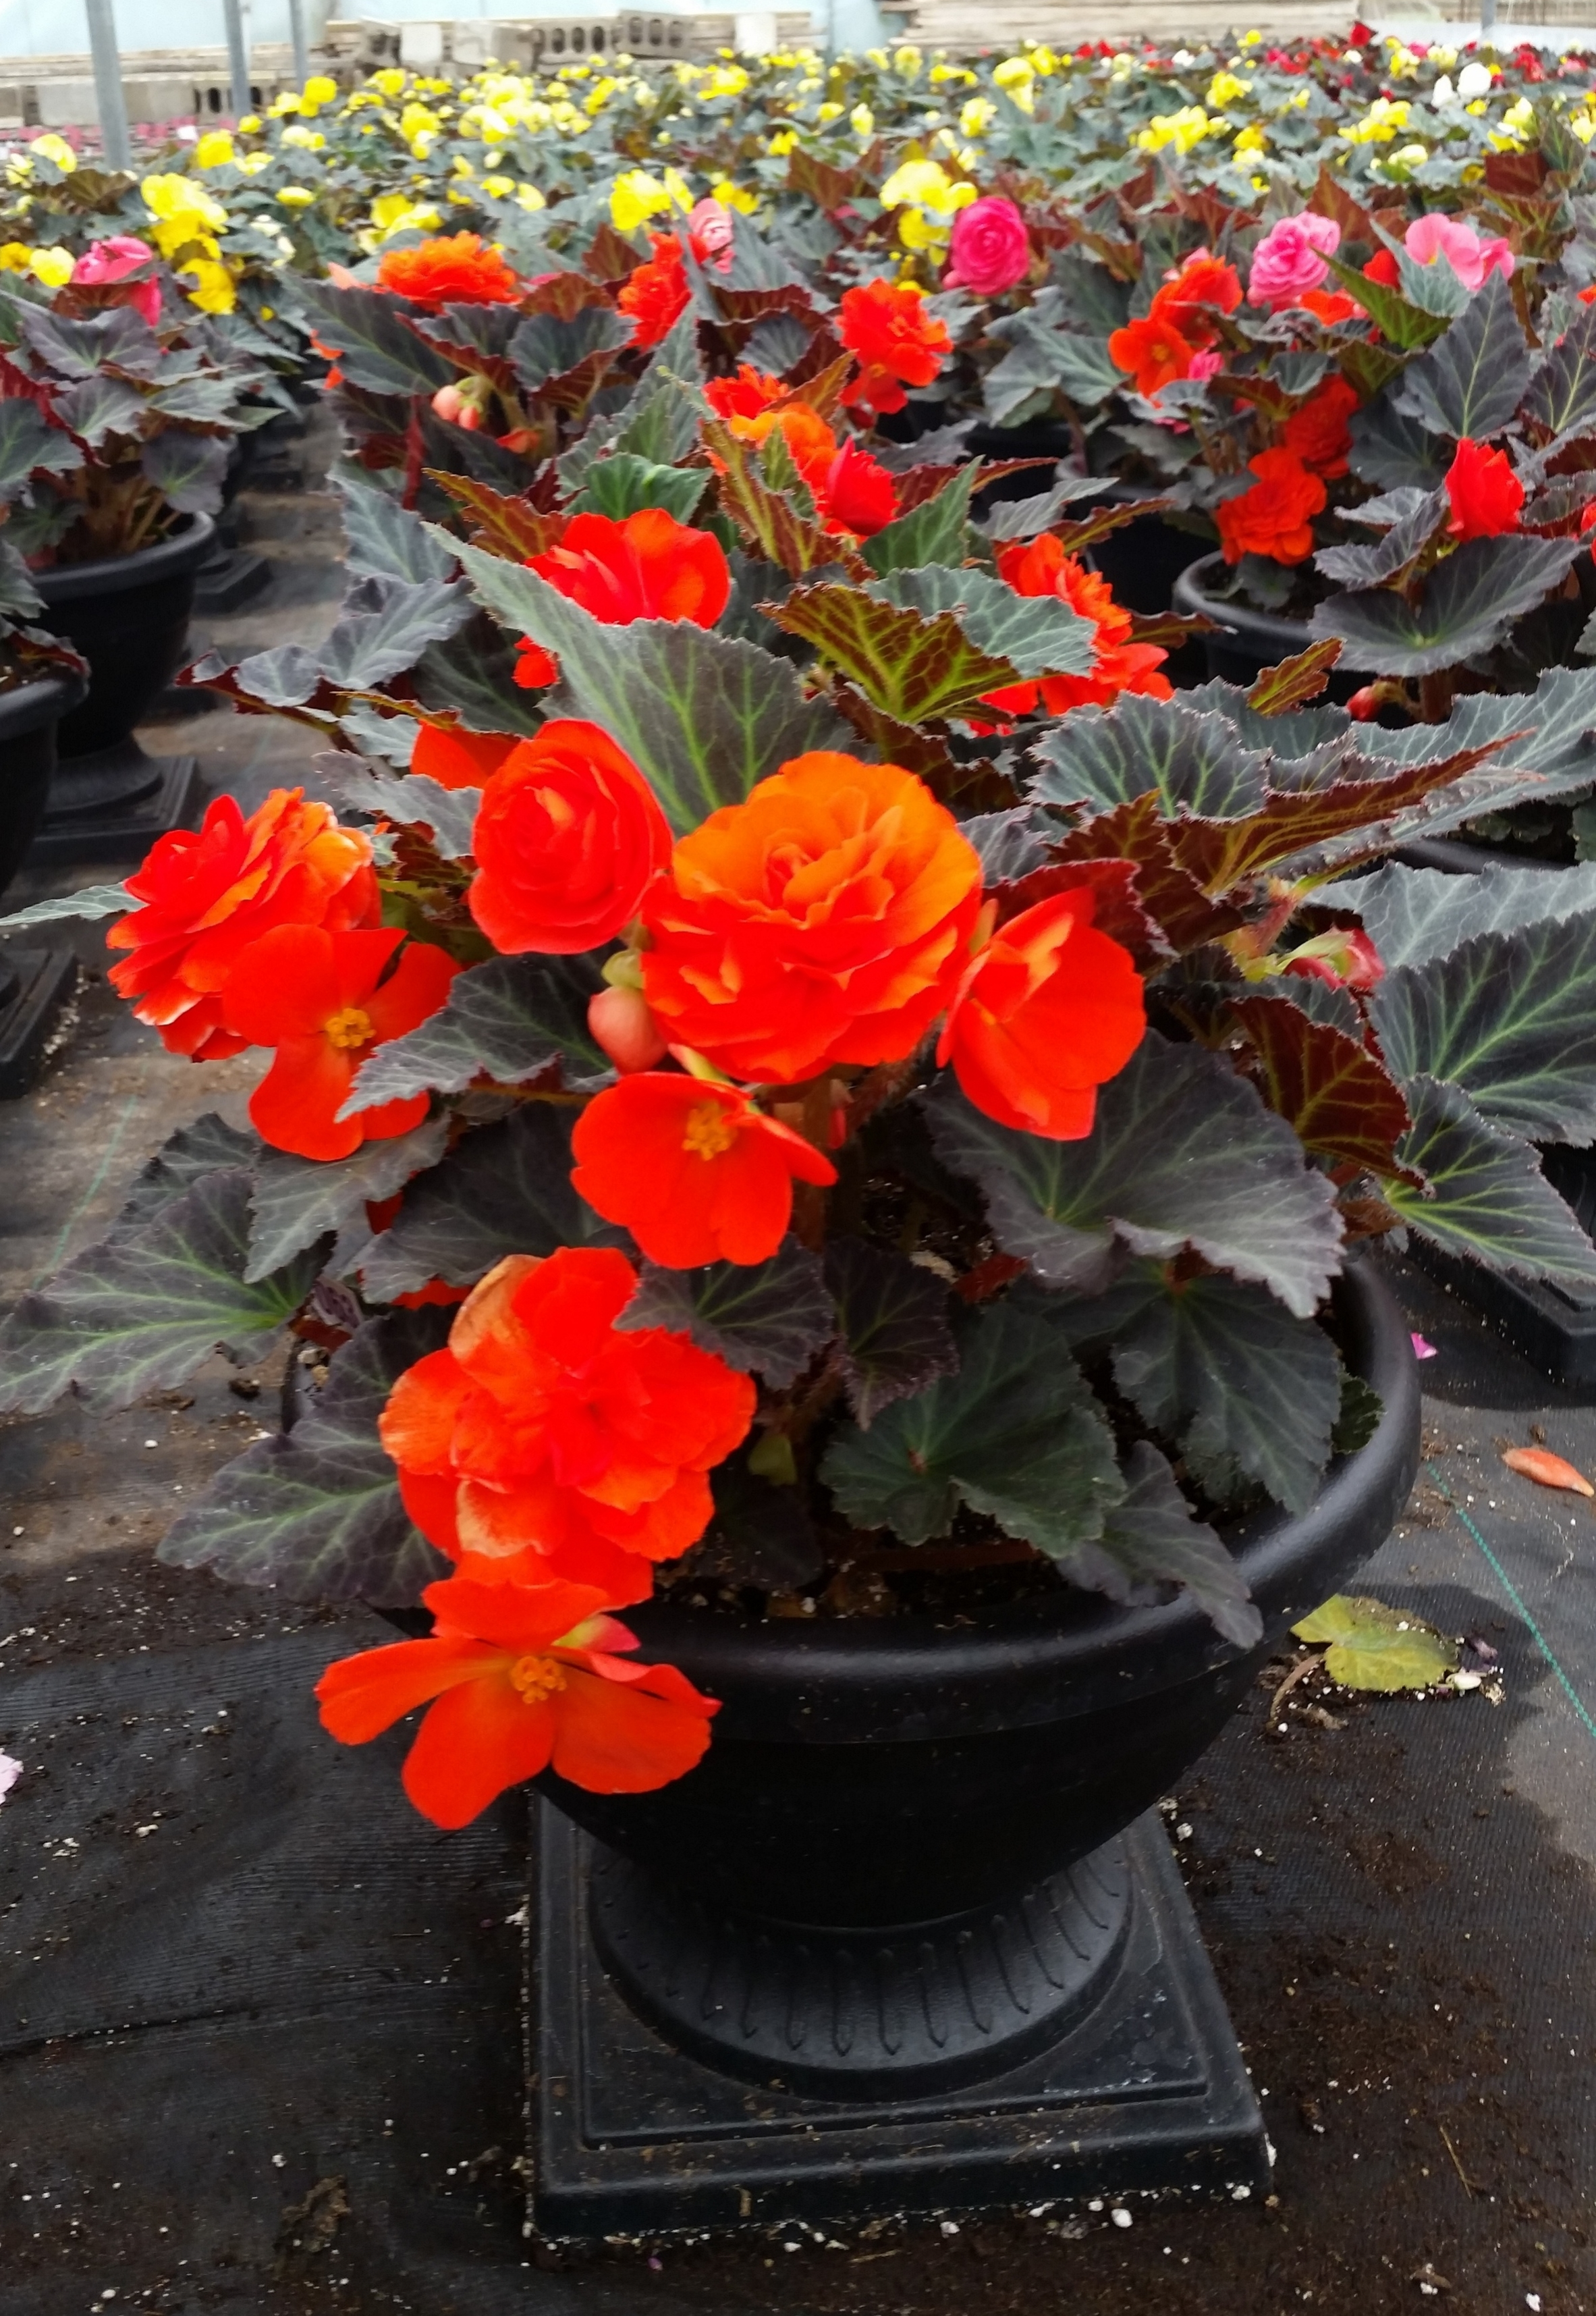 05-08-2015 D12 Chelsea Planter - Growing Place - Non Stop Begonia.jpg